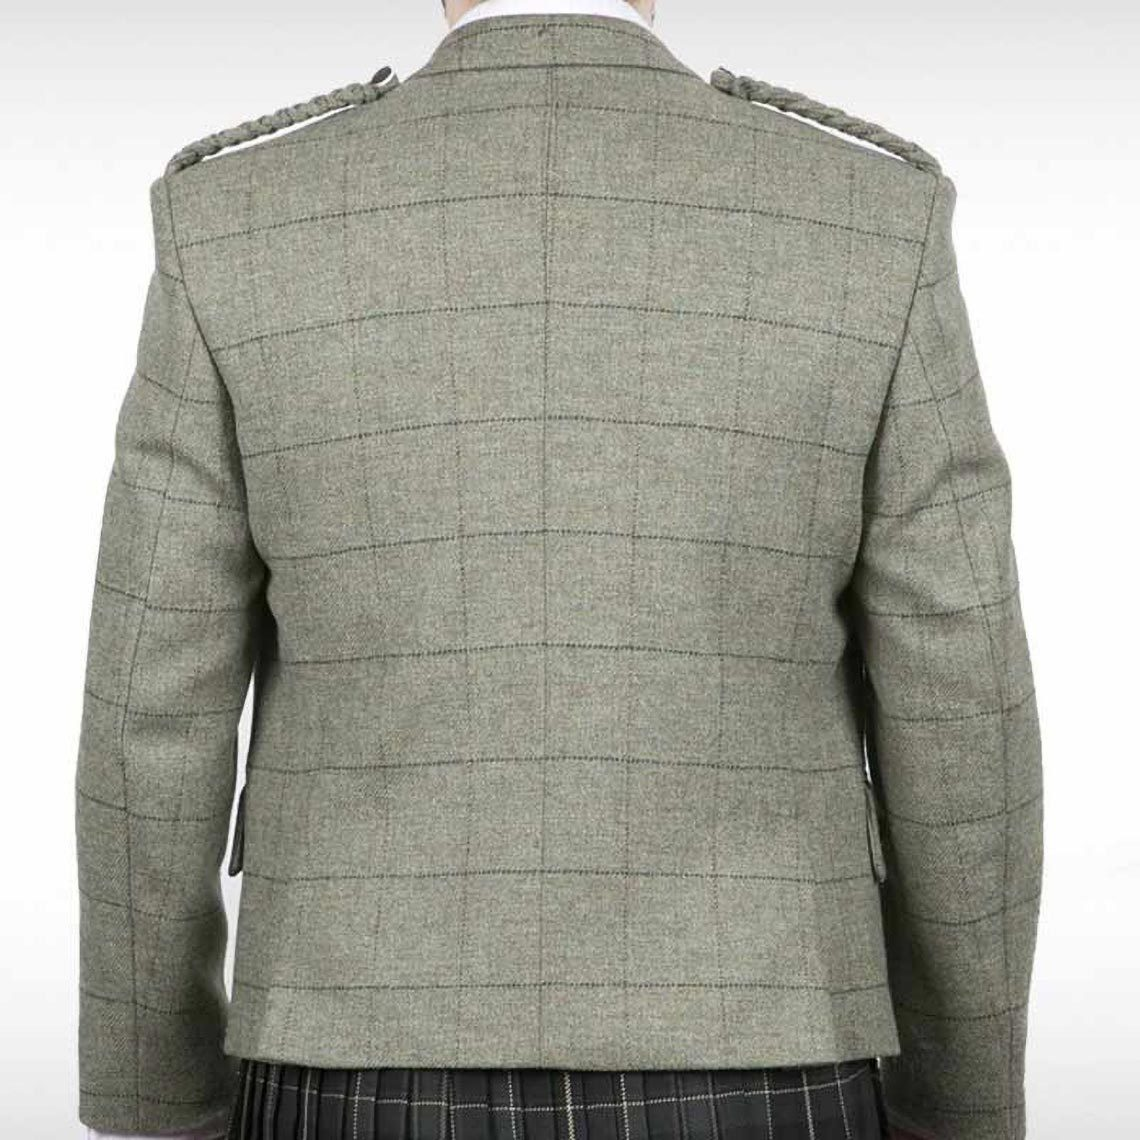 Pale Green Checked Crail Jacket & Waistcoat